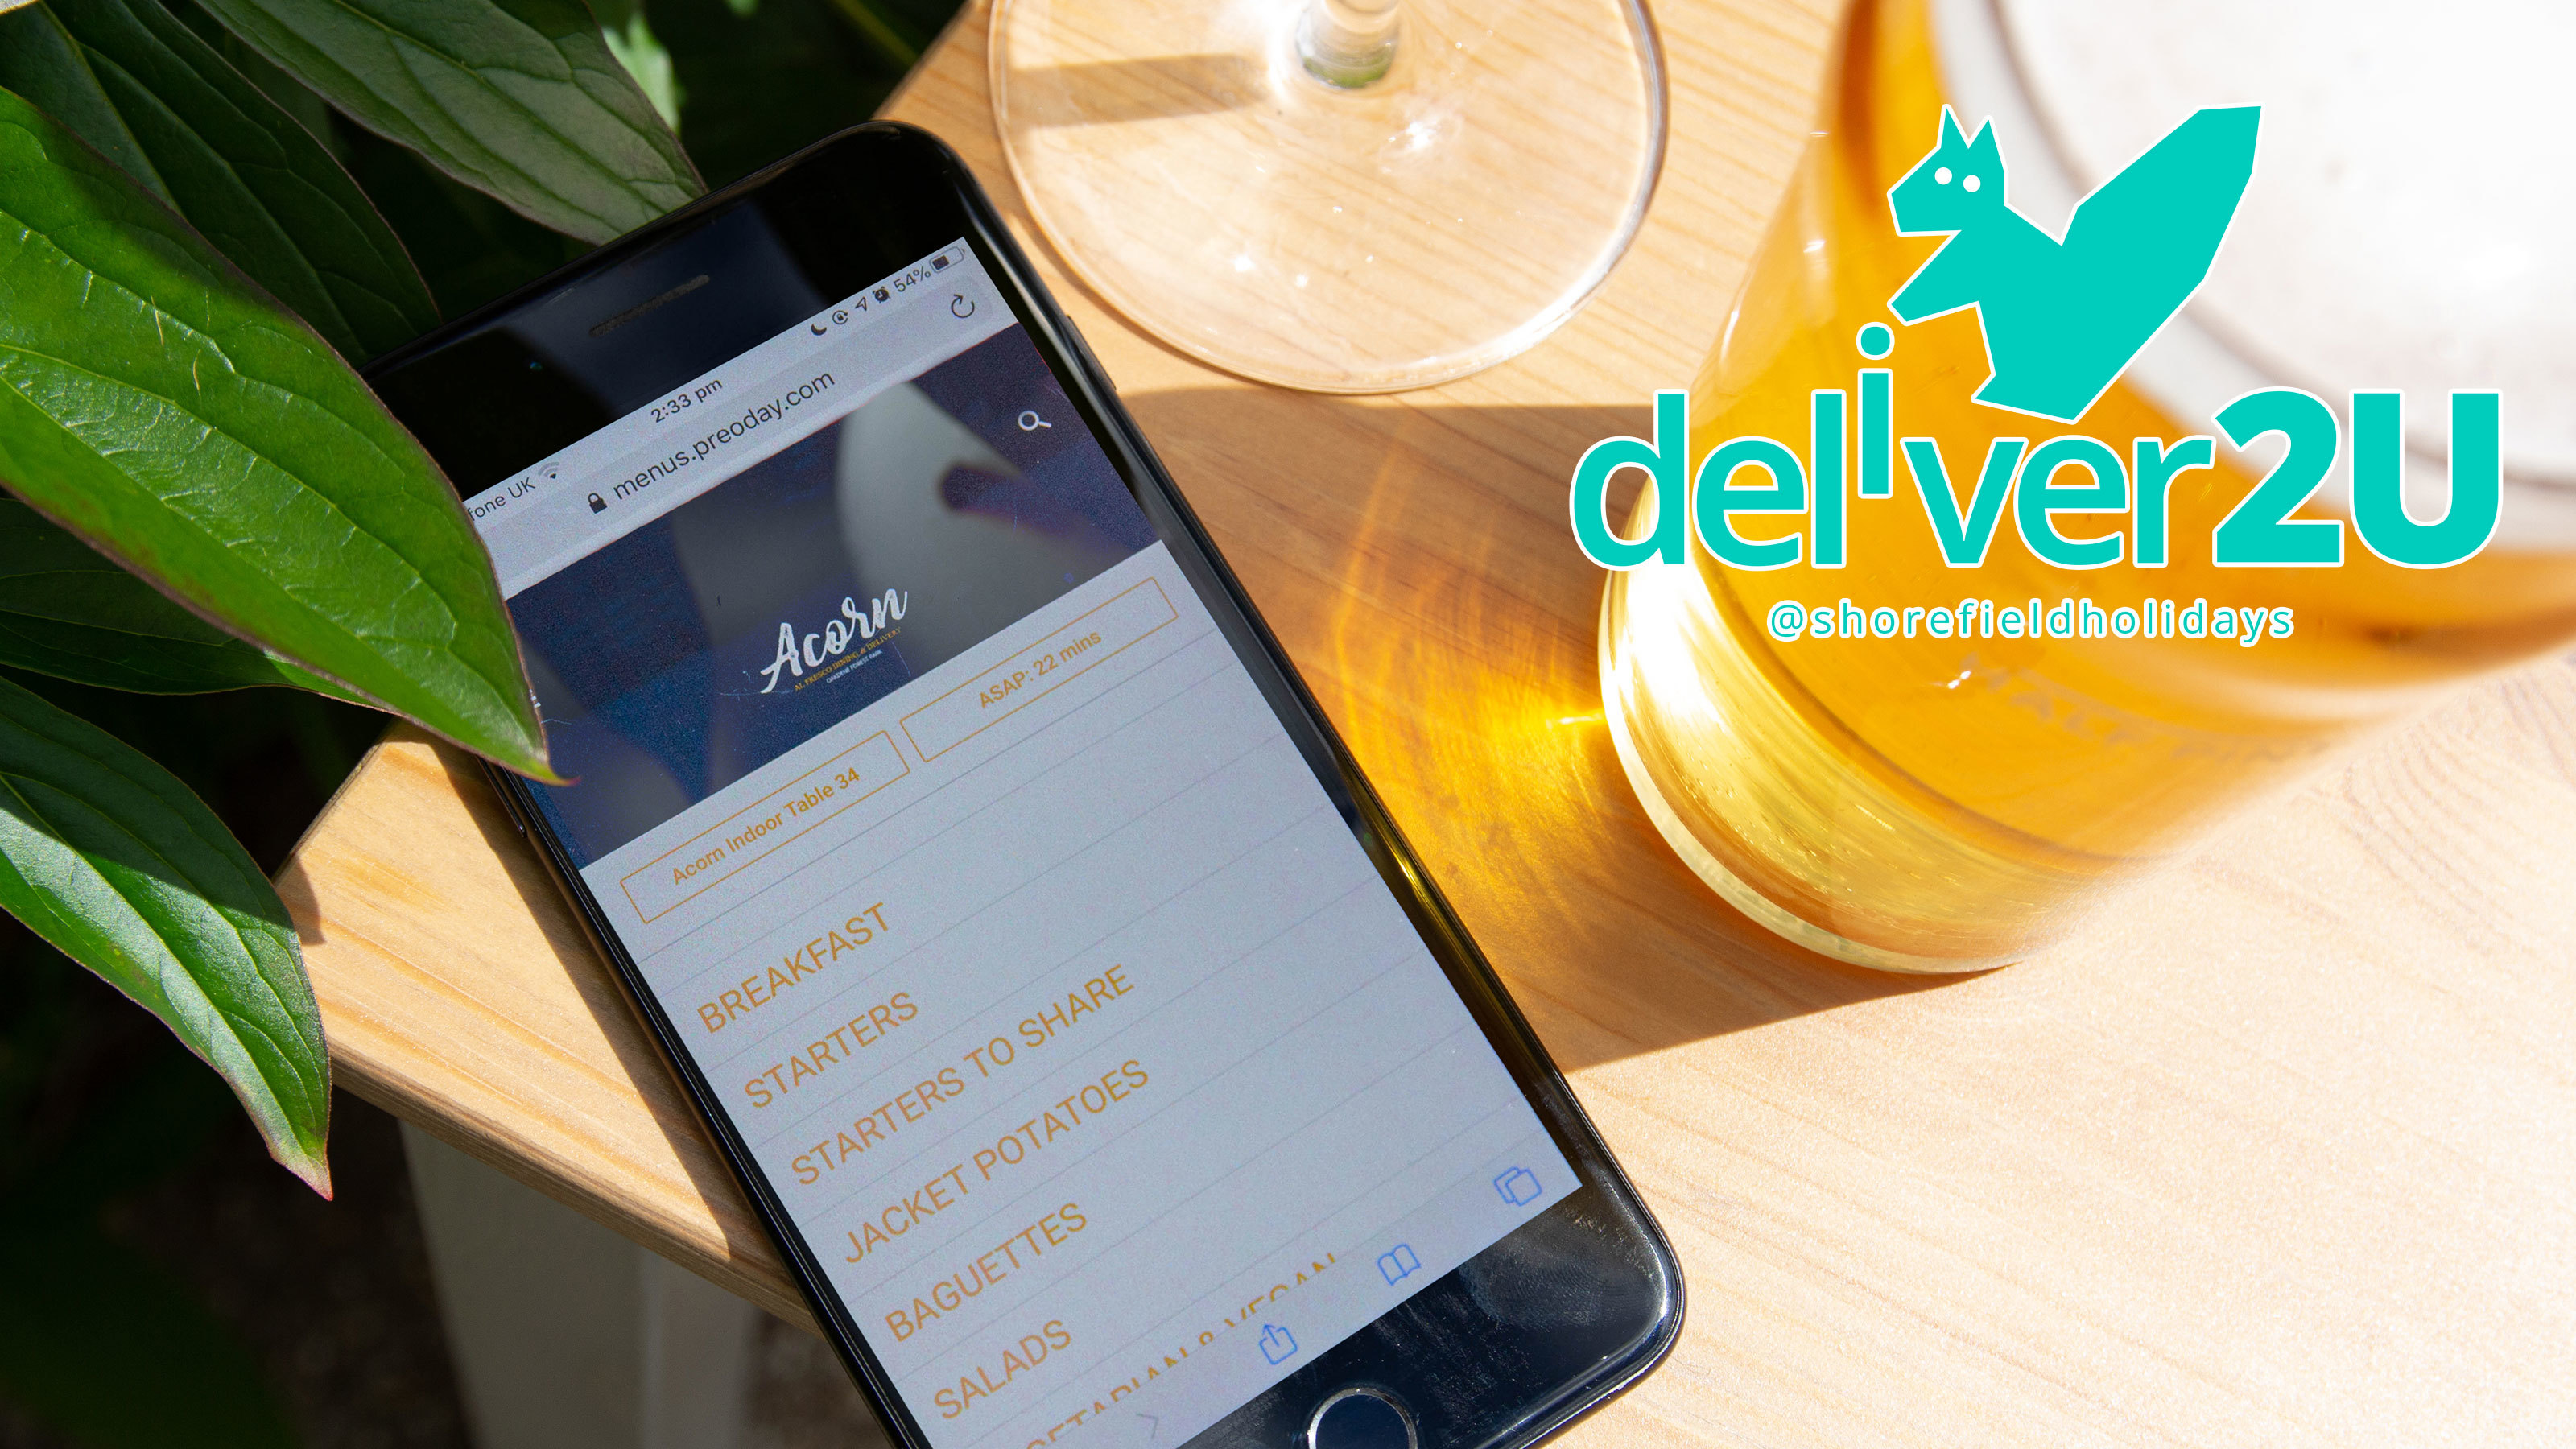 Deliver2U Food Ordering System coming to Shorefield Holiday Parks